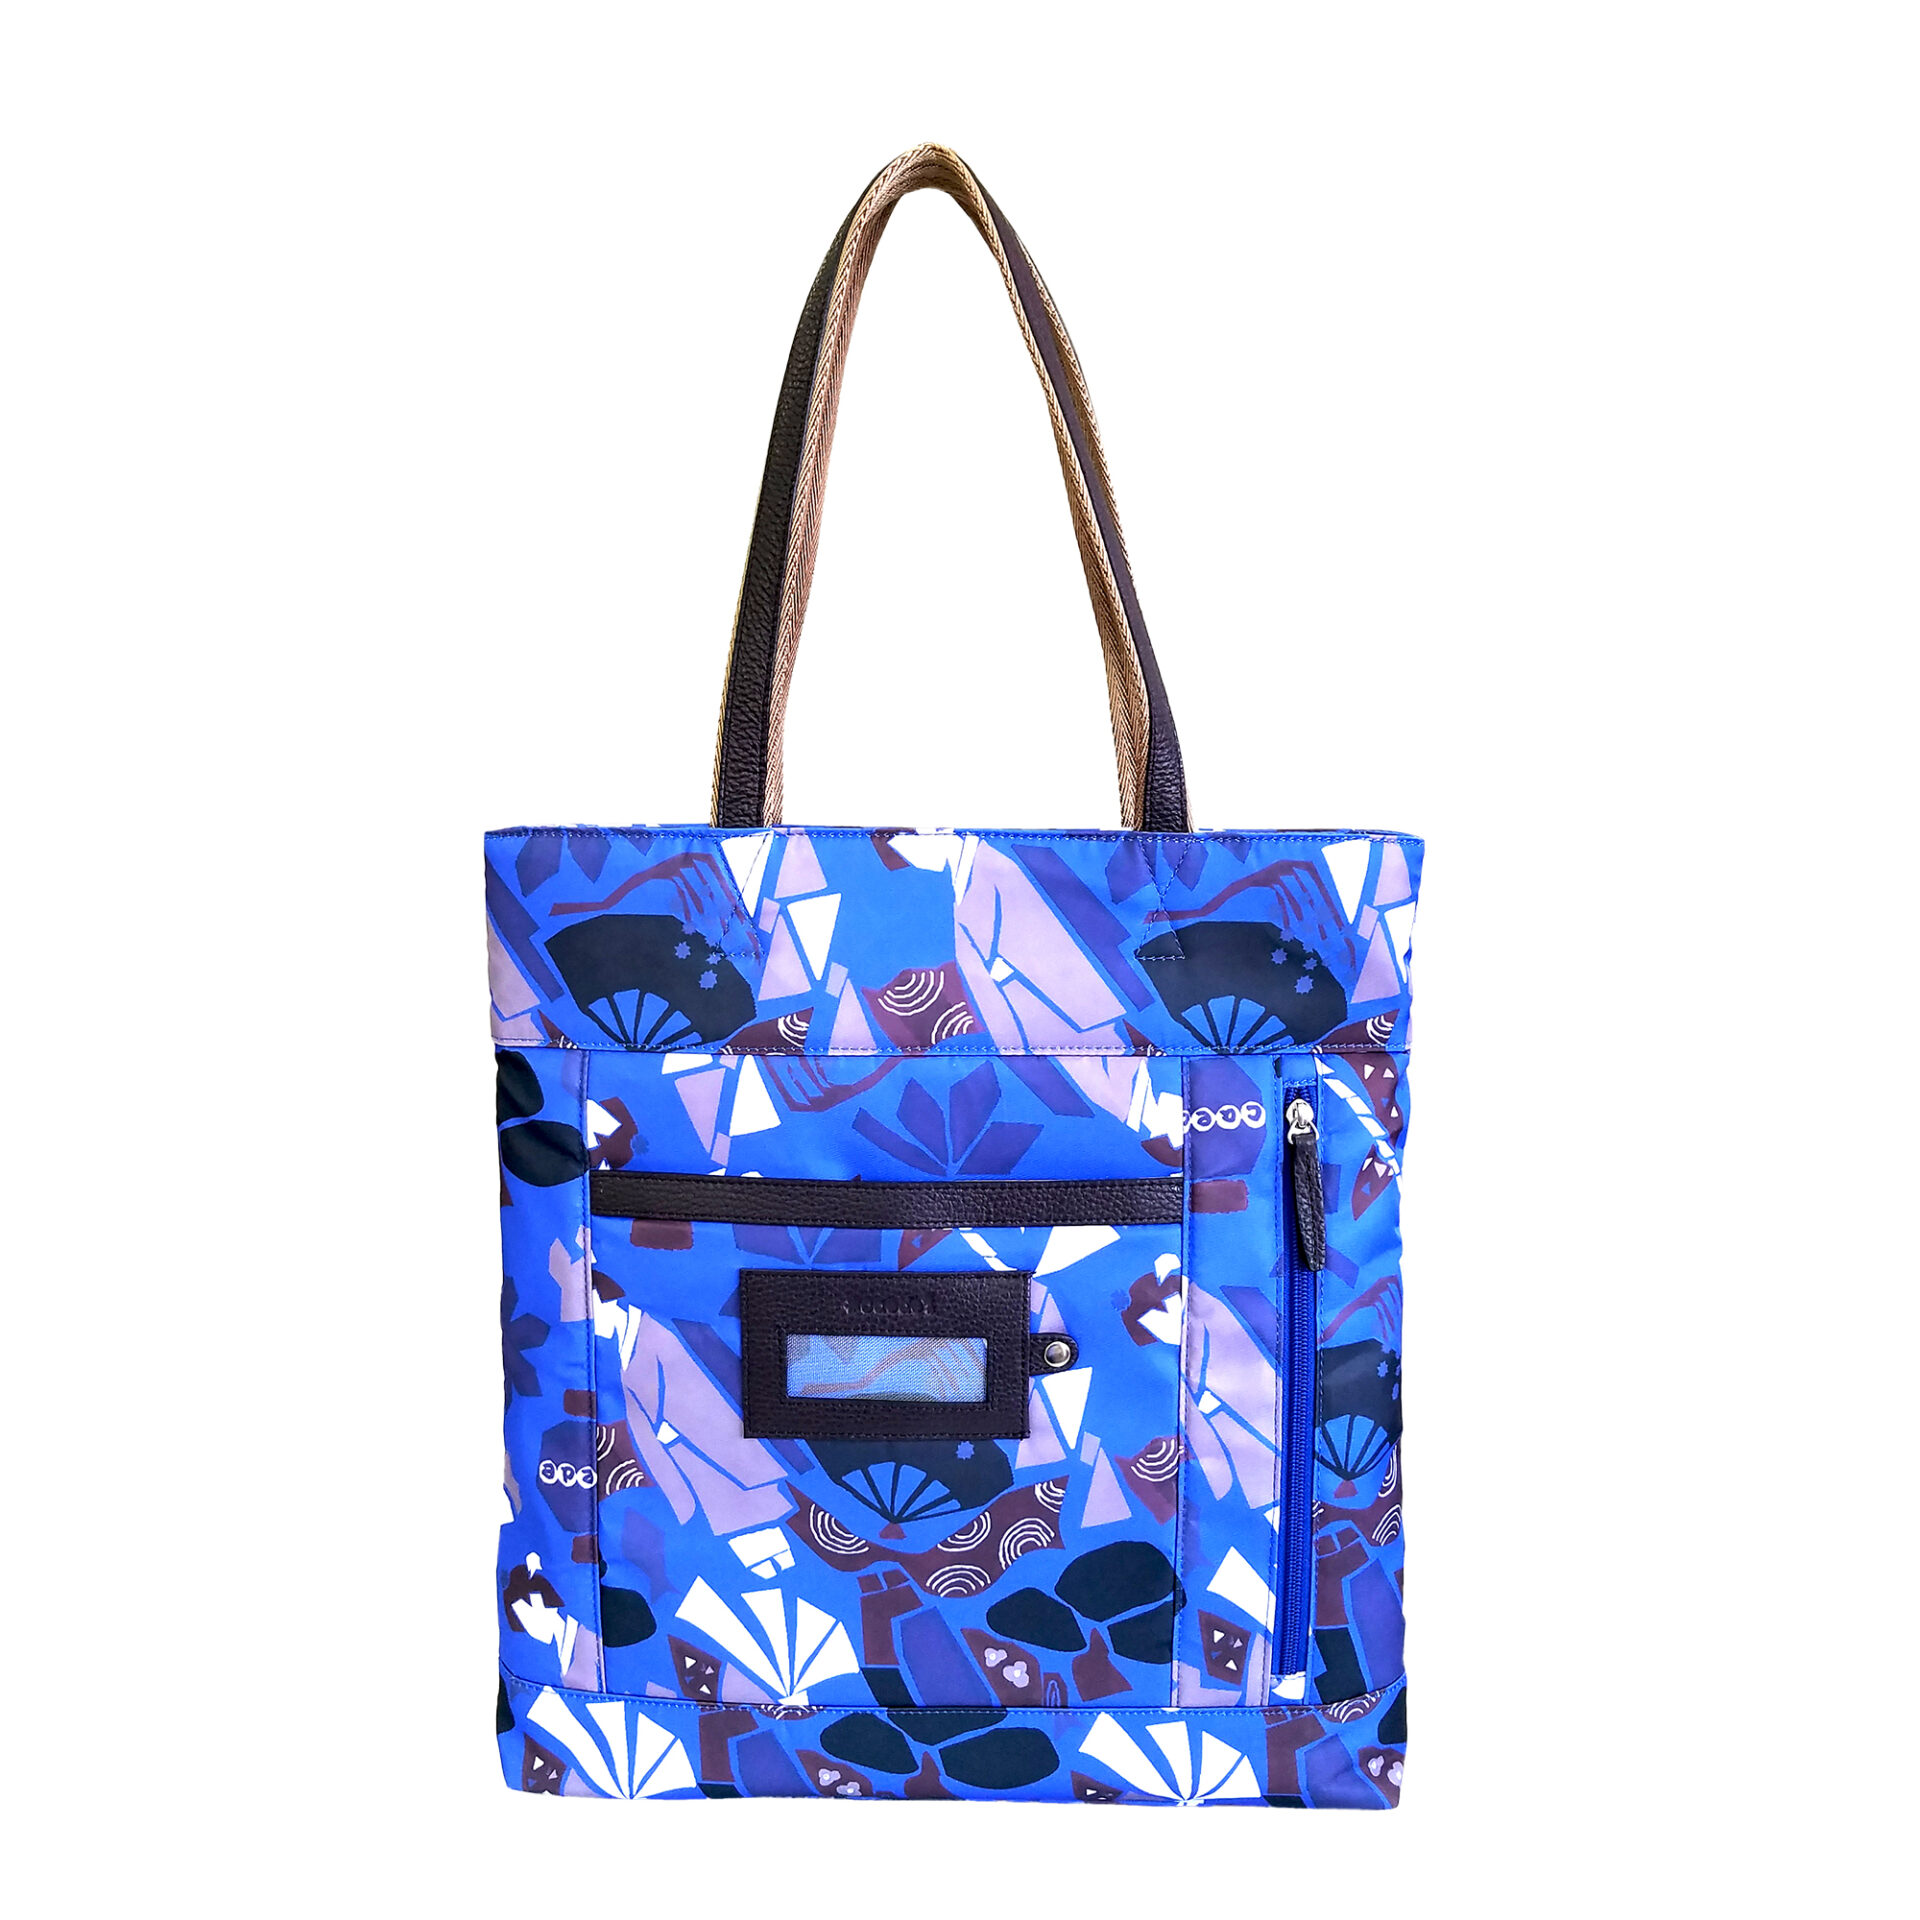 Maiko Puzzle Etna tote blue